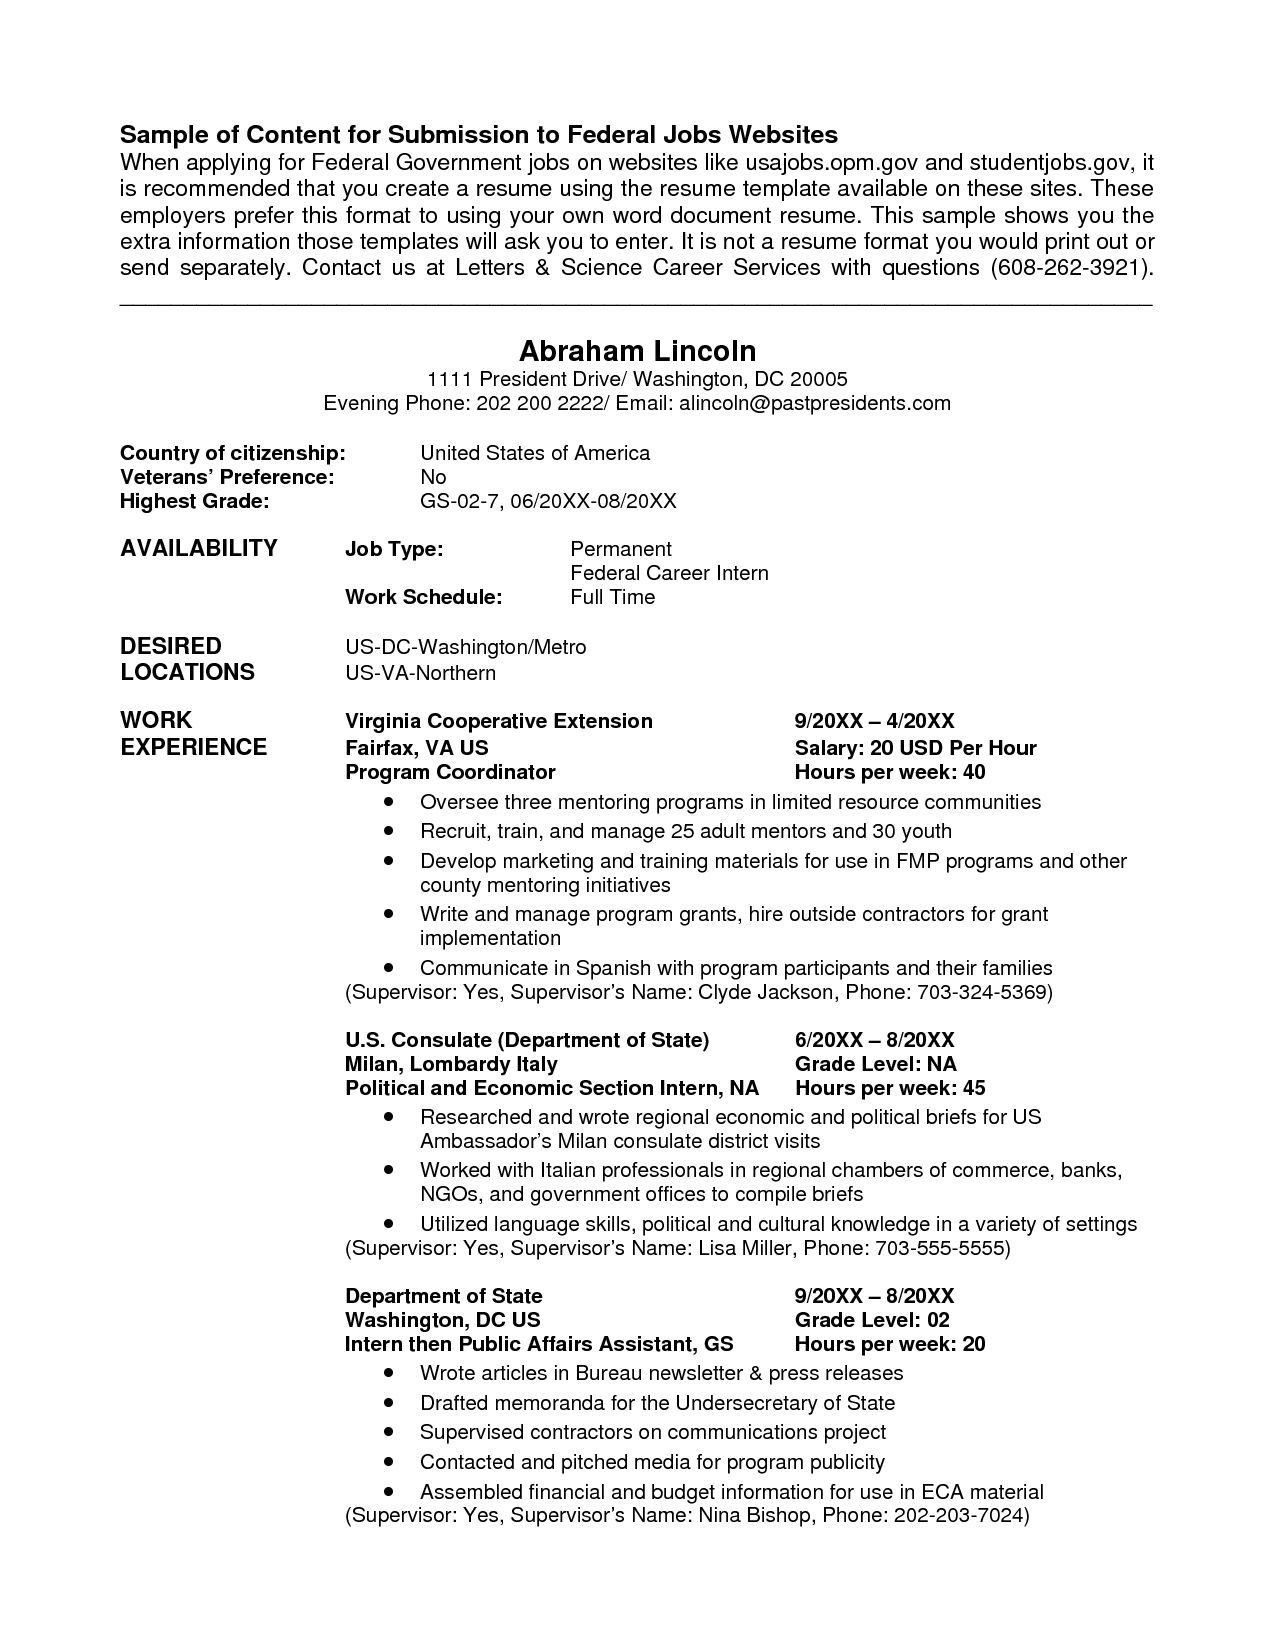 Job Resume Template Resume Format Usa Jobs Job Resume Template